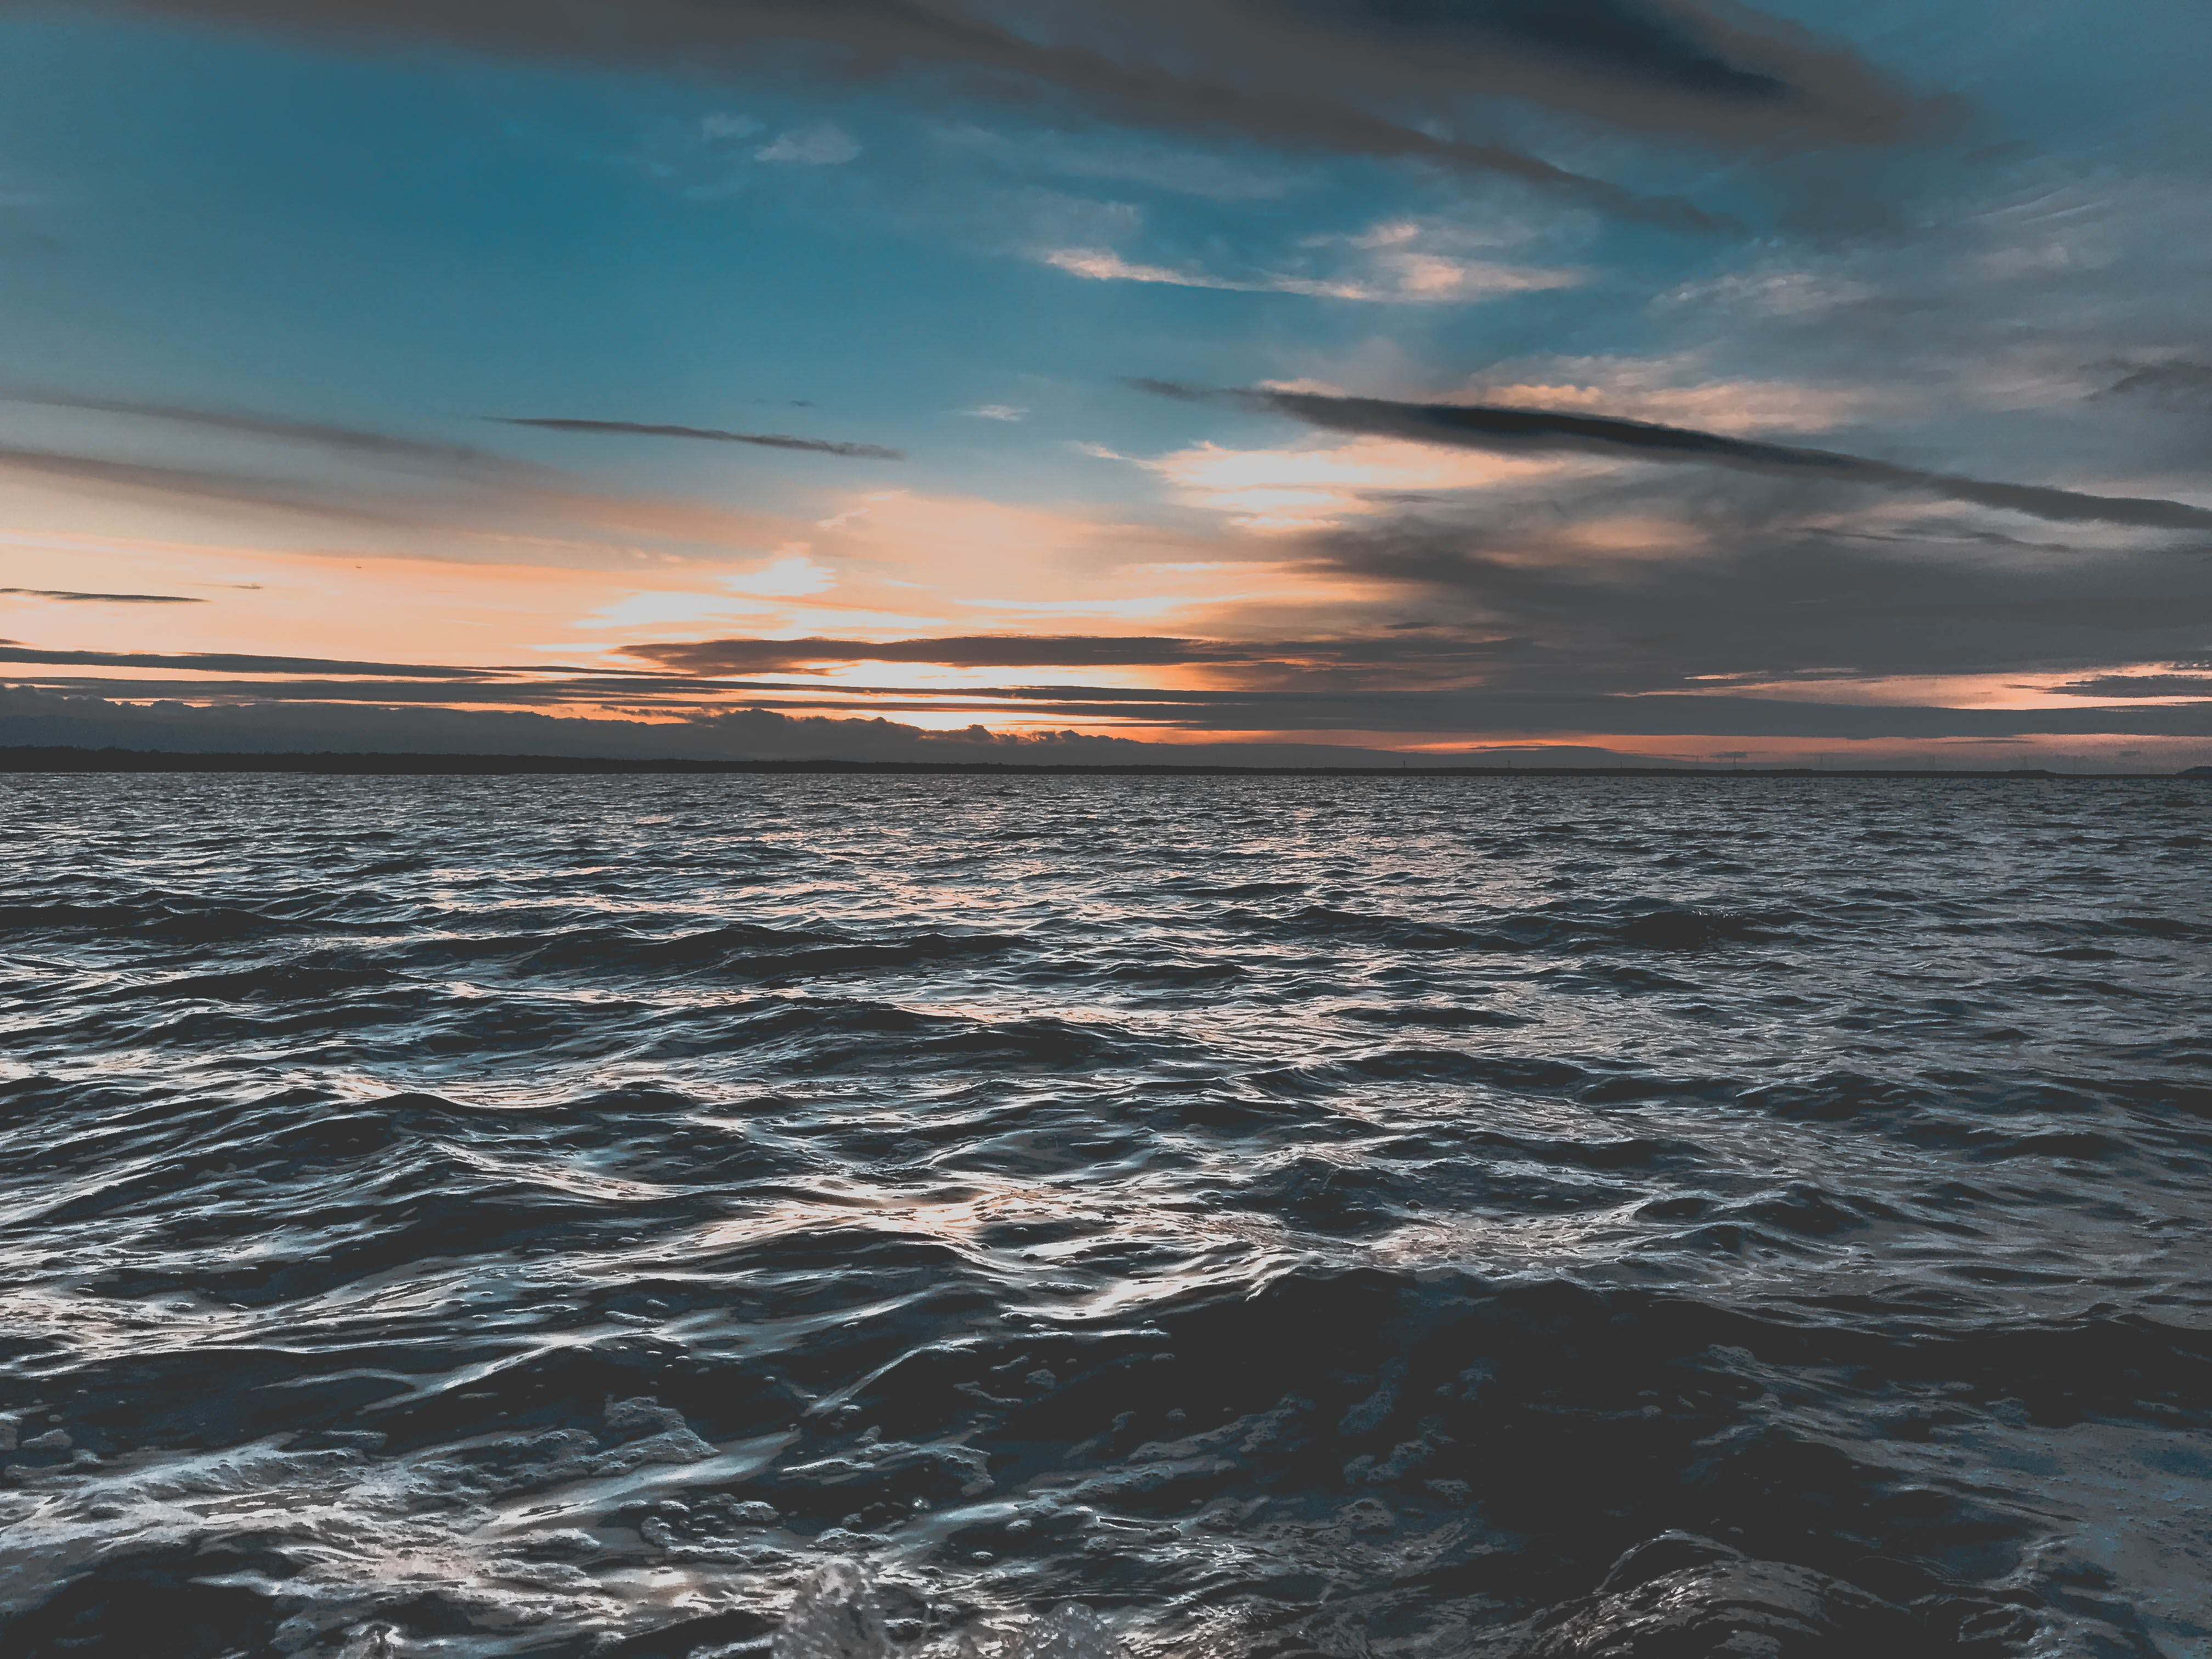 Body of Water Under Gray Clouds